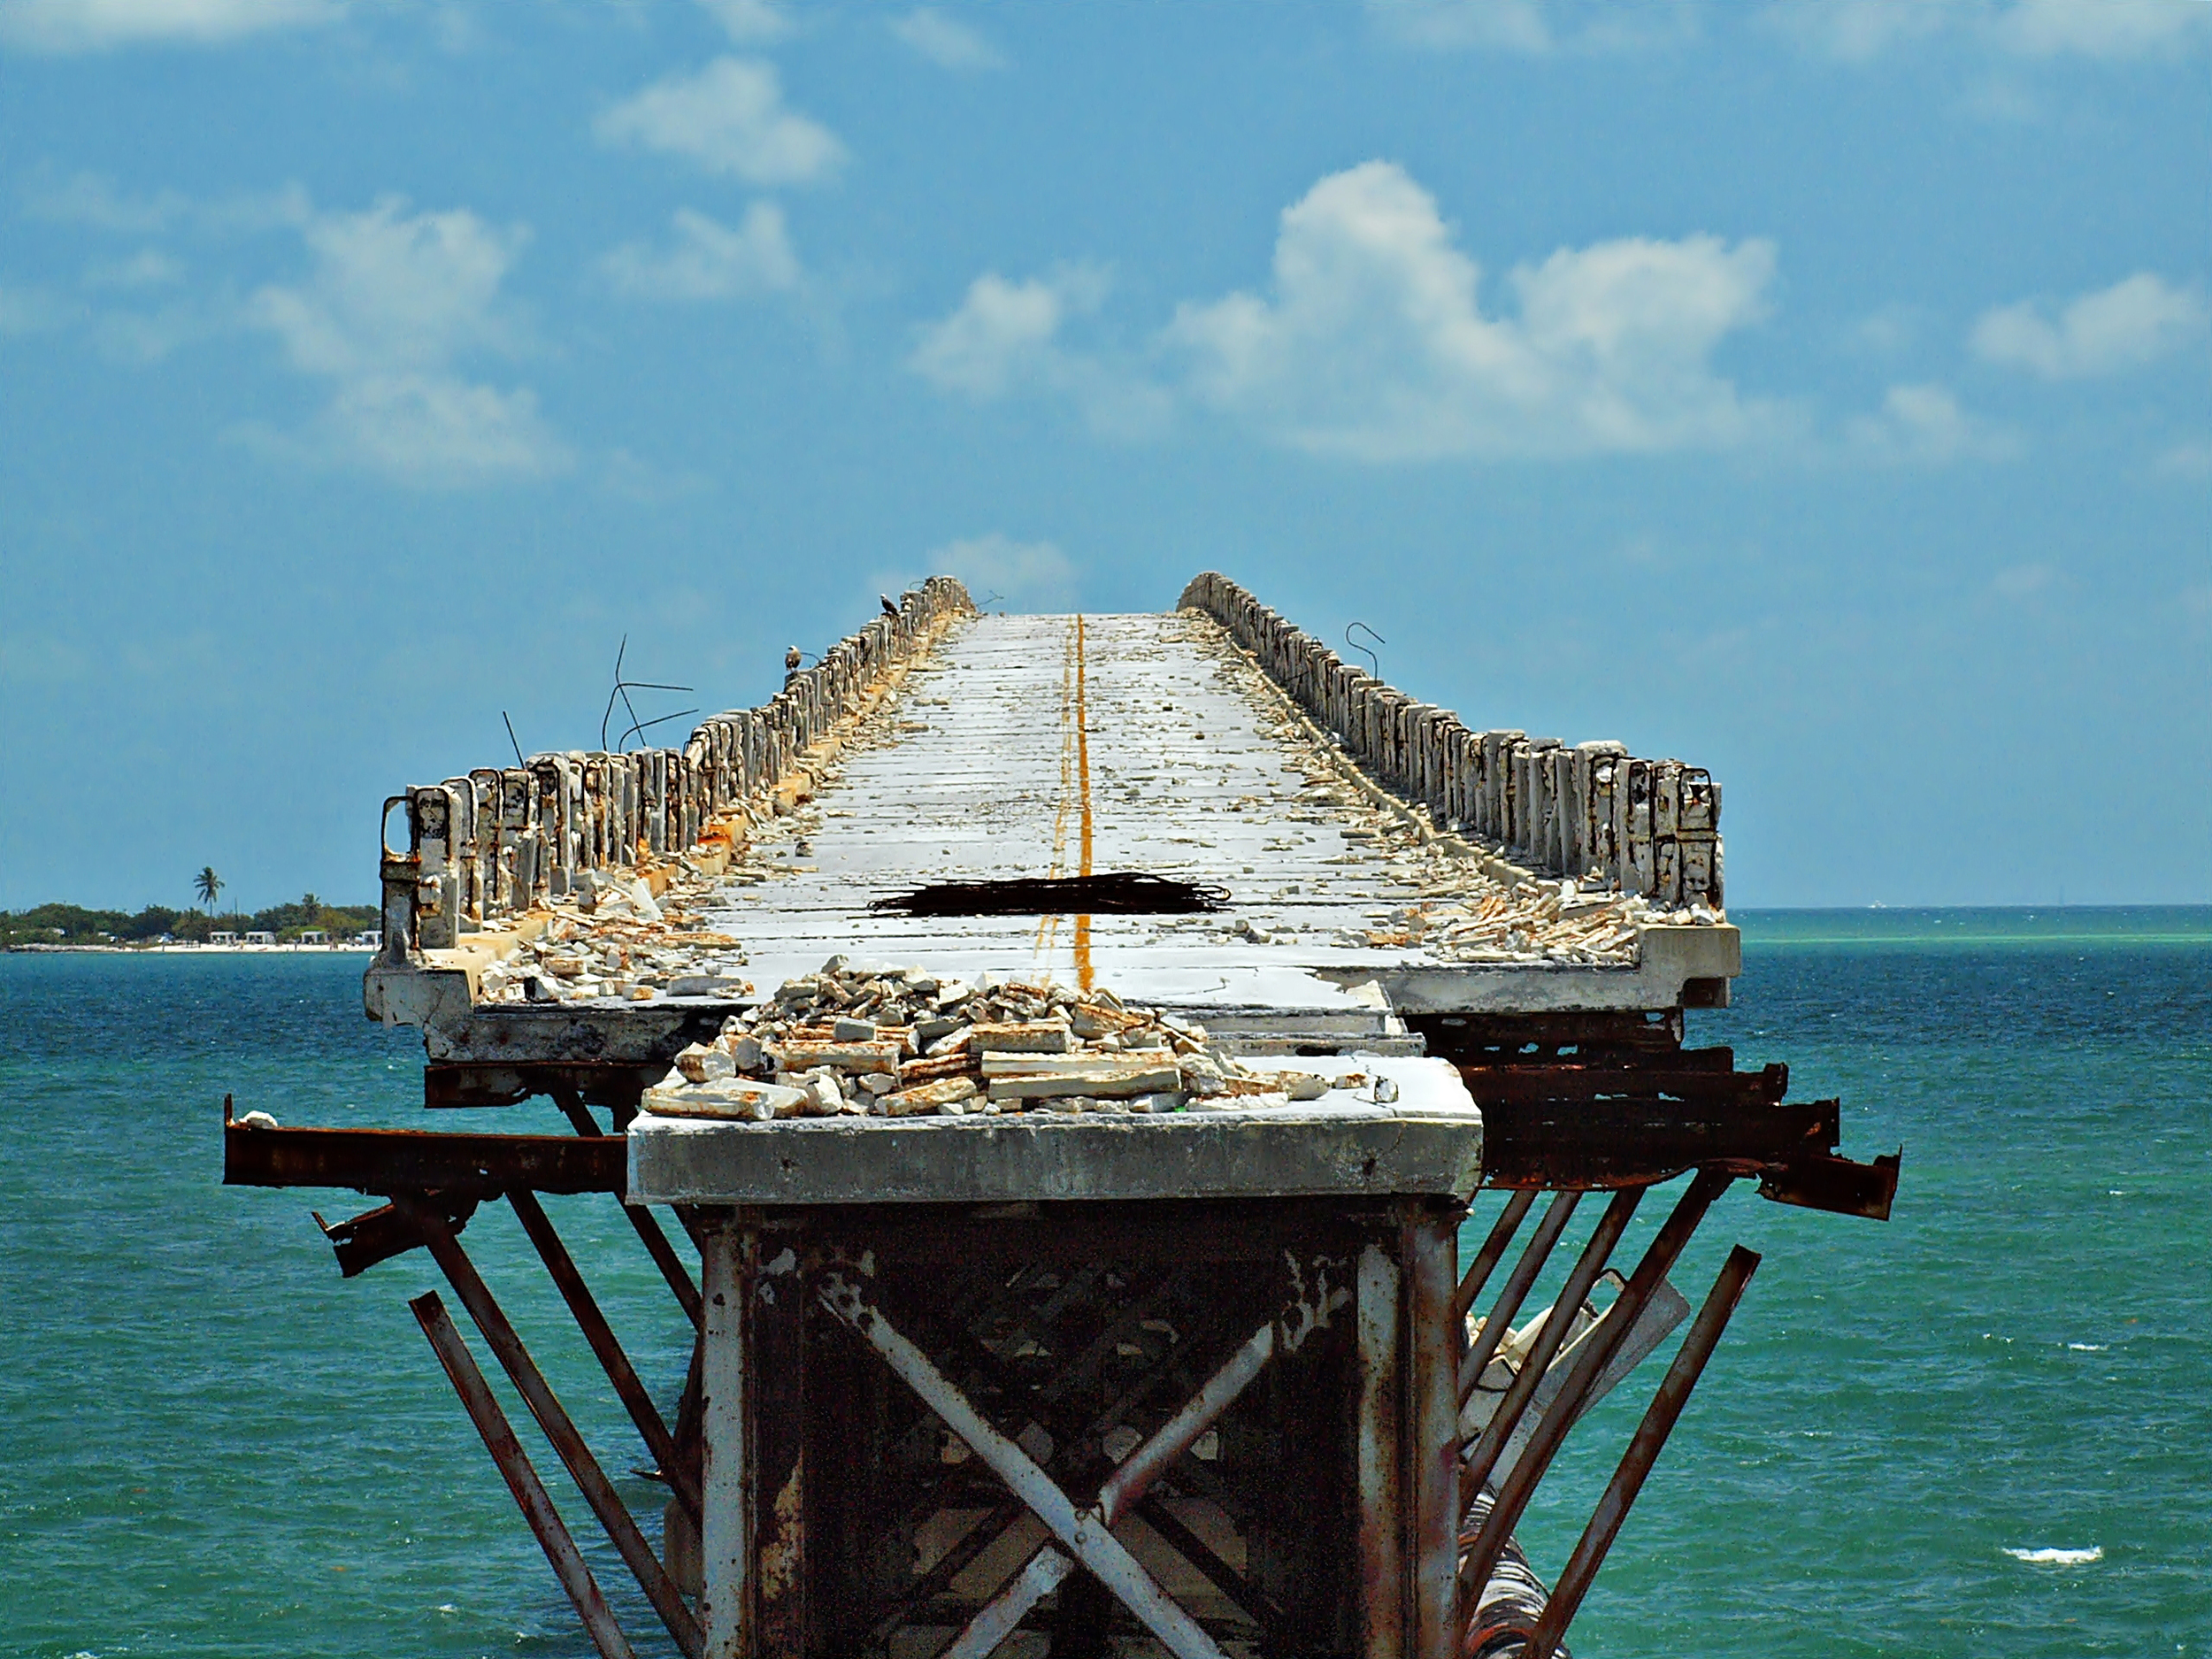 Bahia Honda Bridge in the Florida Keys. The reinforced concrete deck was installed 1938 and abandoned 34 years later. Image © Phil's 1stPix , used with permission of Creative Commons license